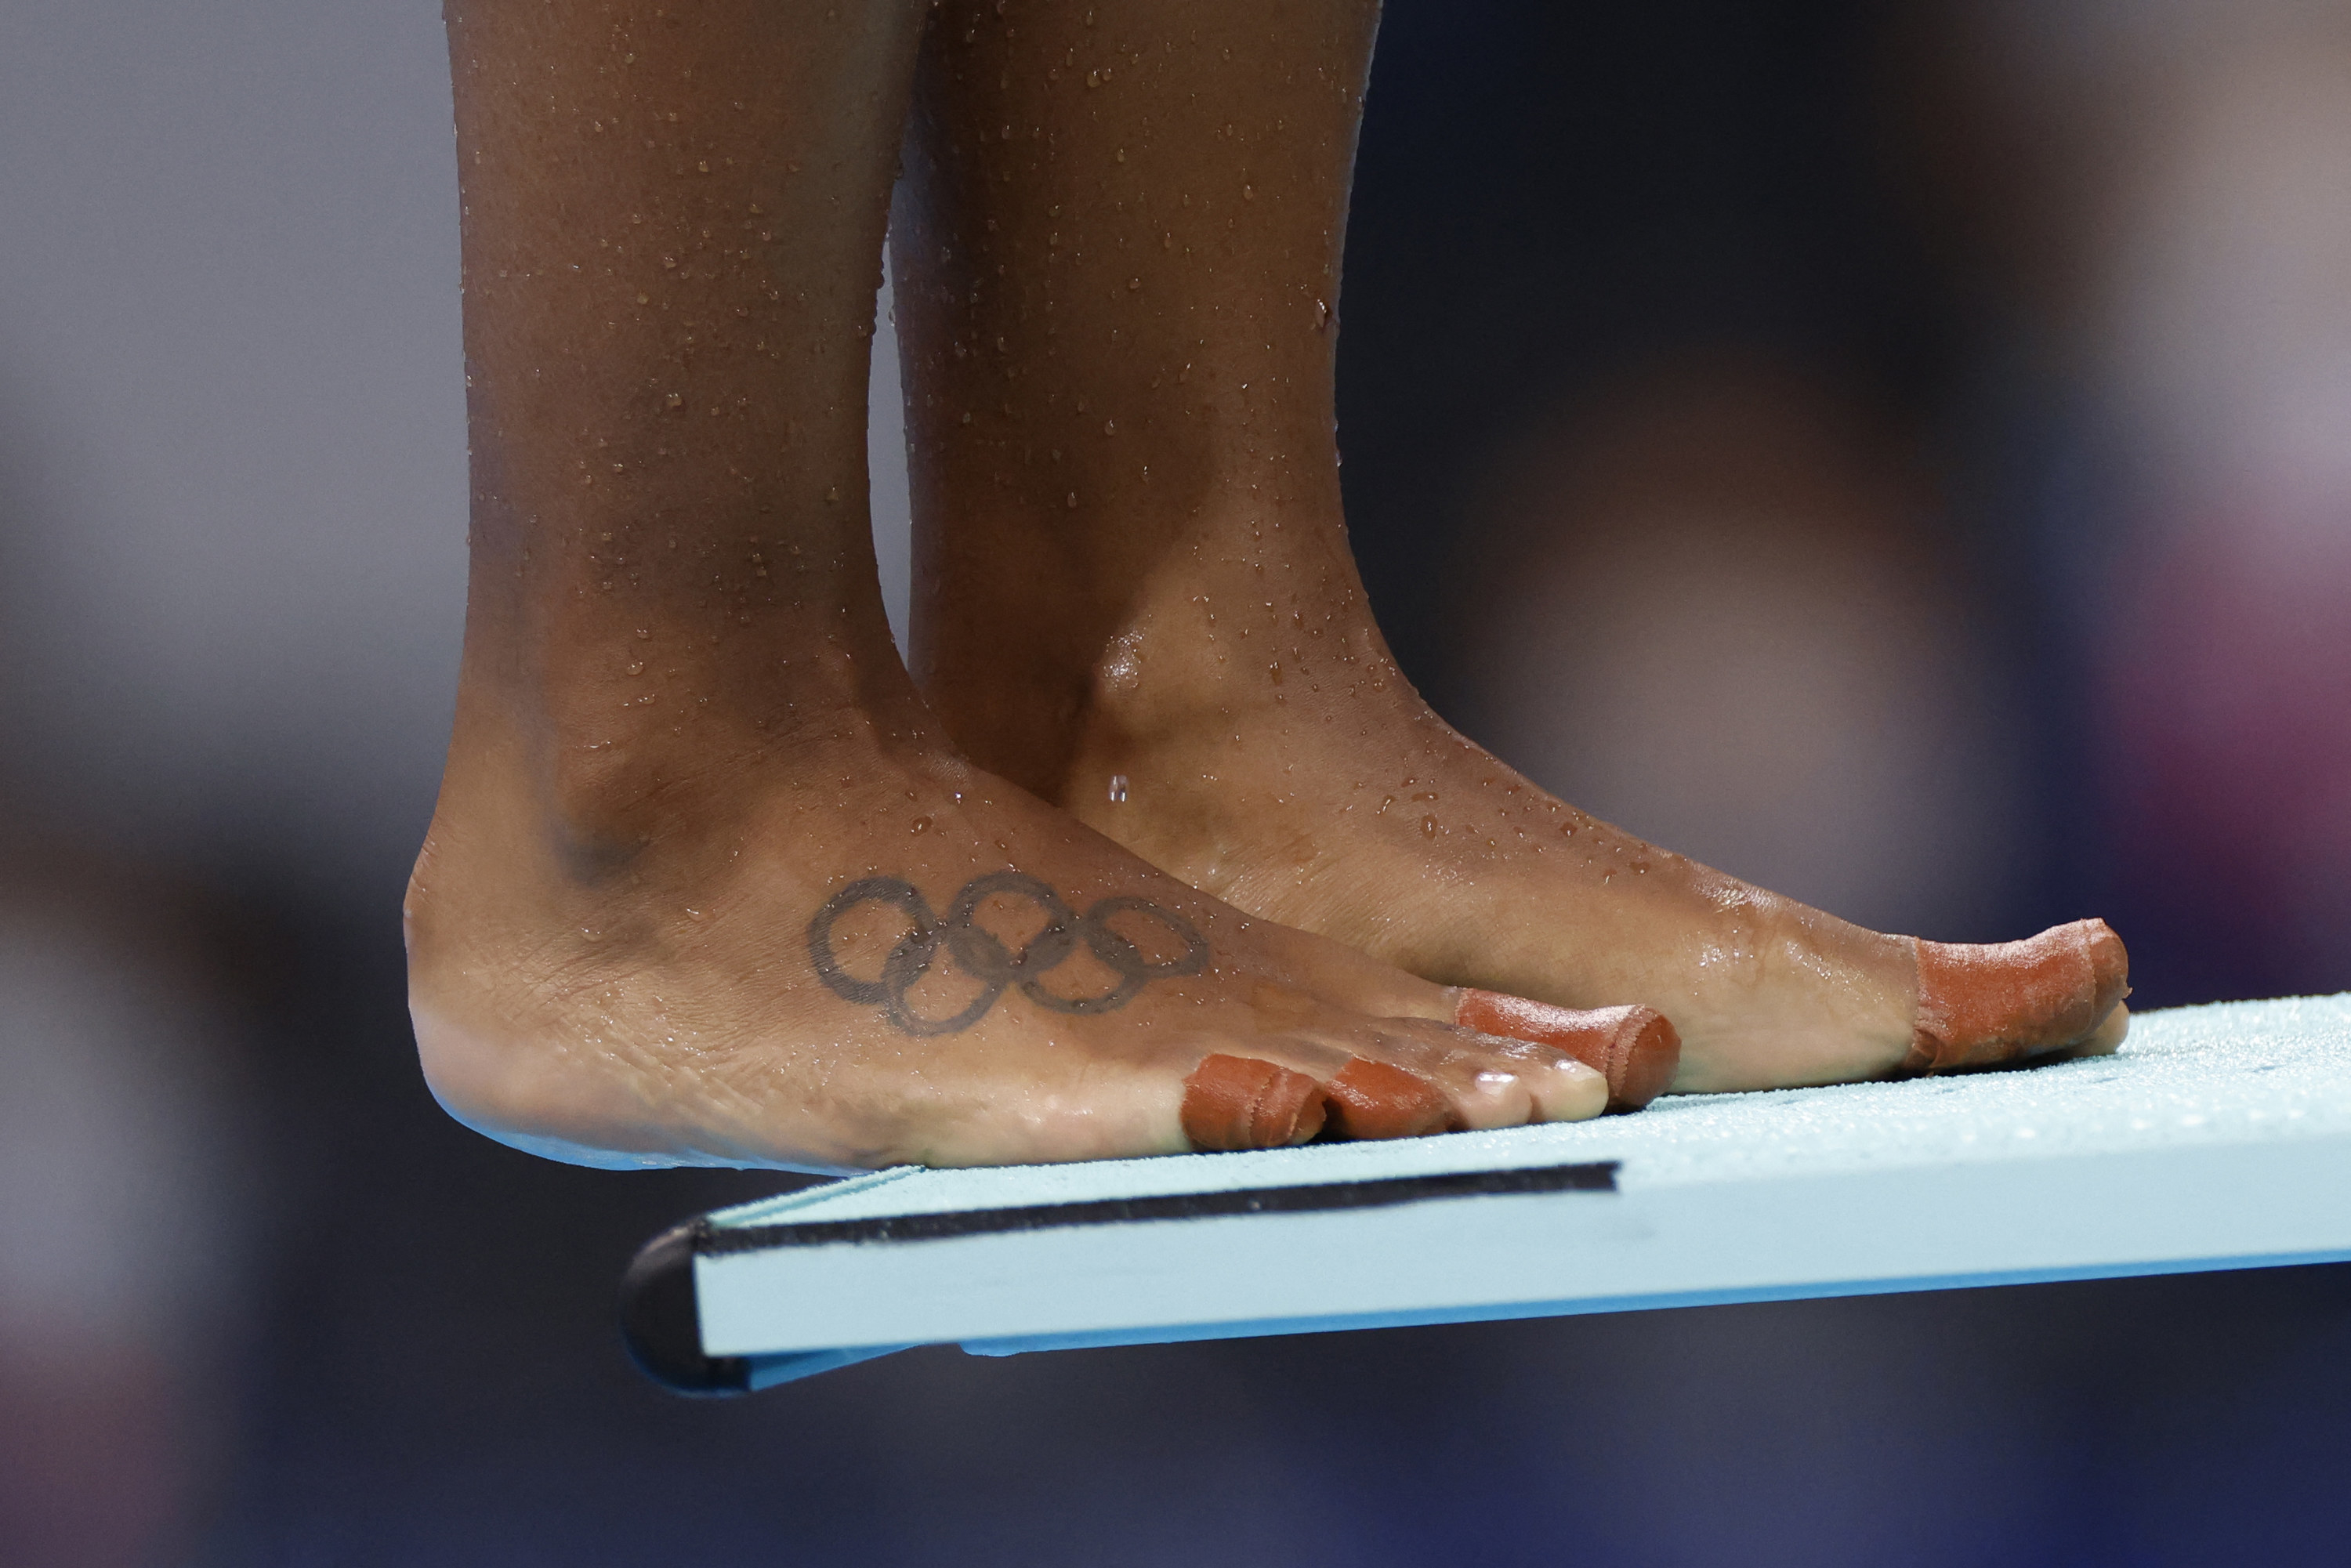 Close-up of swimmer's tattooed feet on a diving board